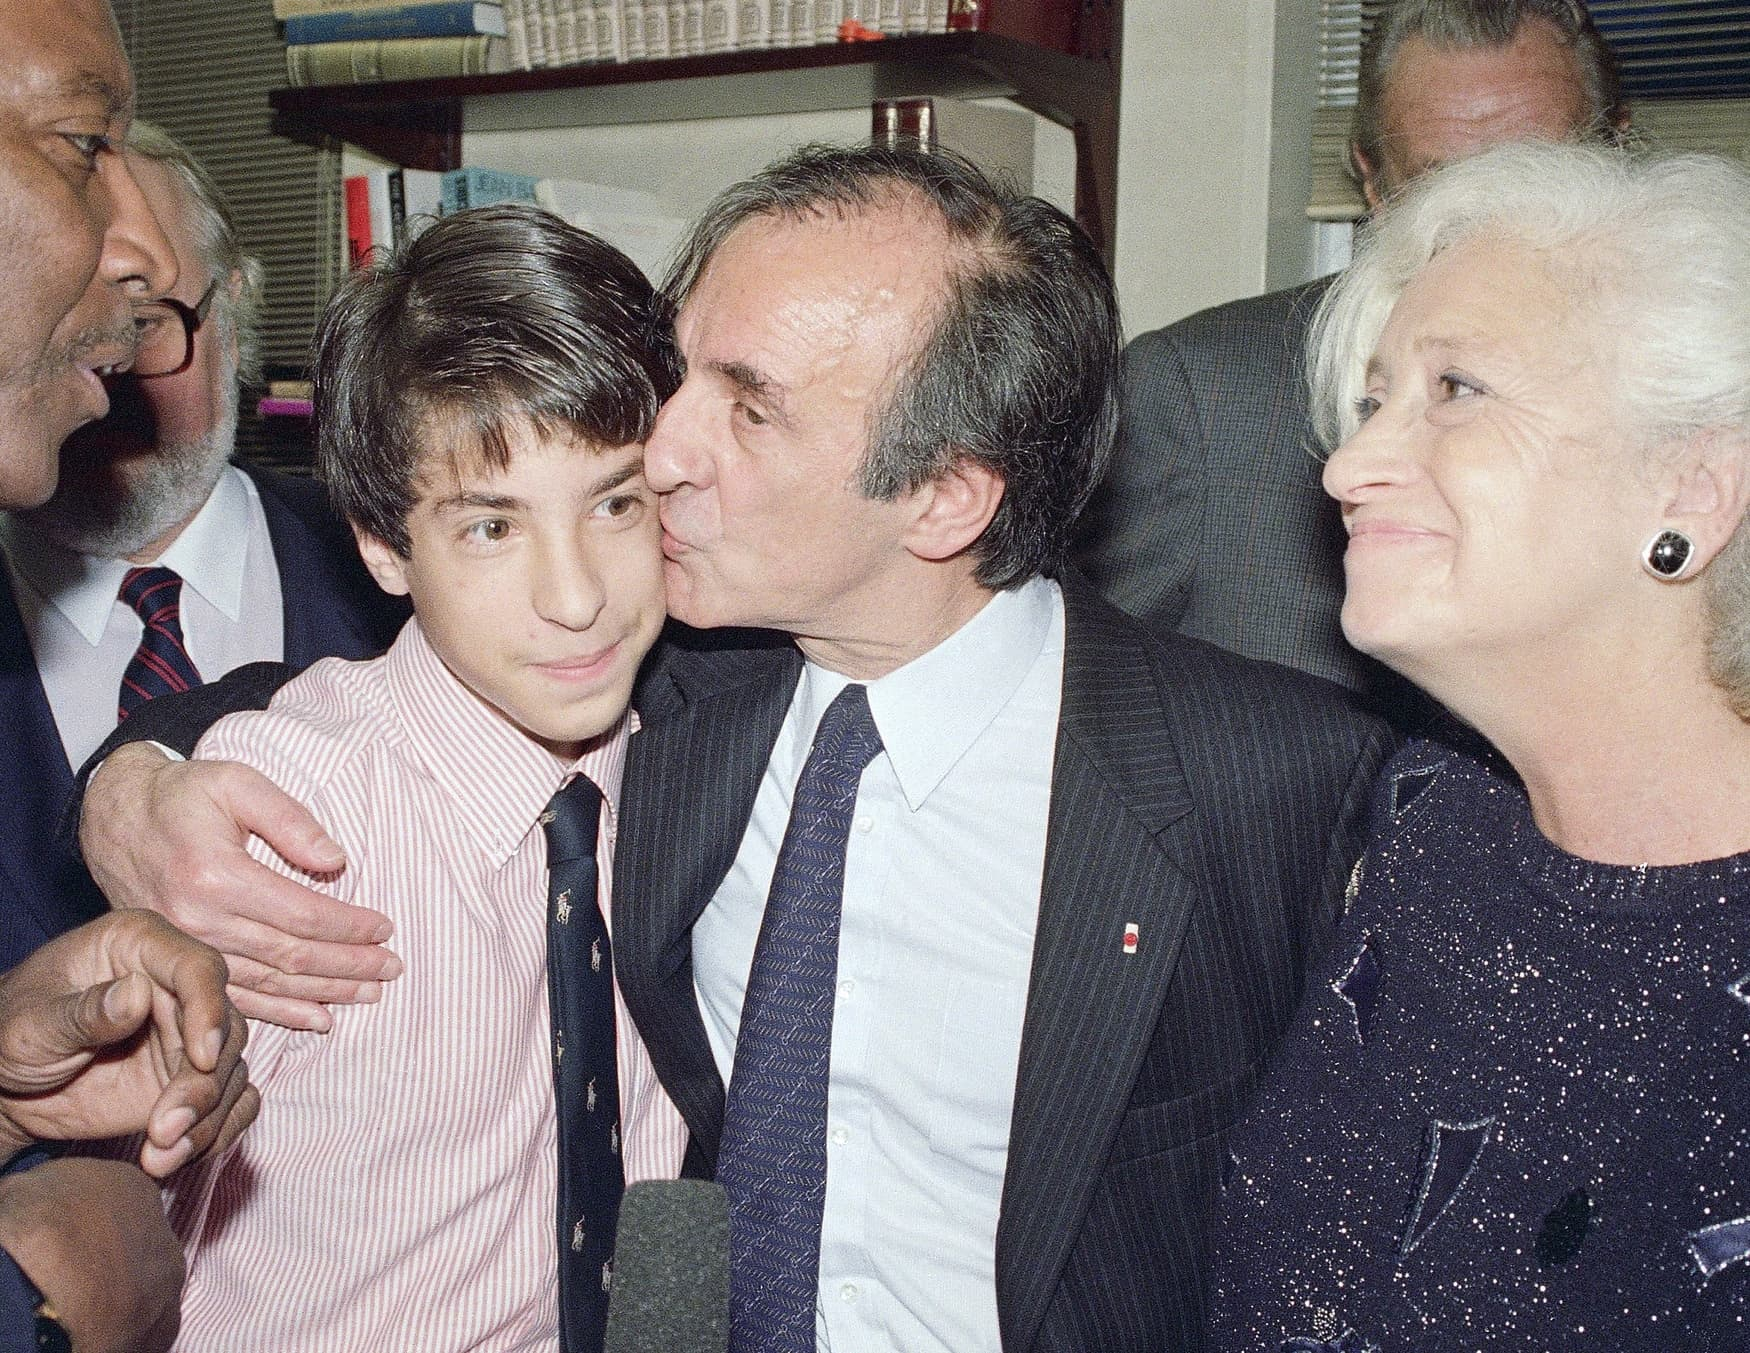 Elie Wiesel, with his wife, Marion, and son, Elisha, in New York after the announcement that he been awarded the 1986 Nobel Peace Prize.Credit...Richard Drew/Associated Press